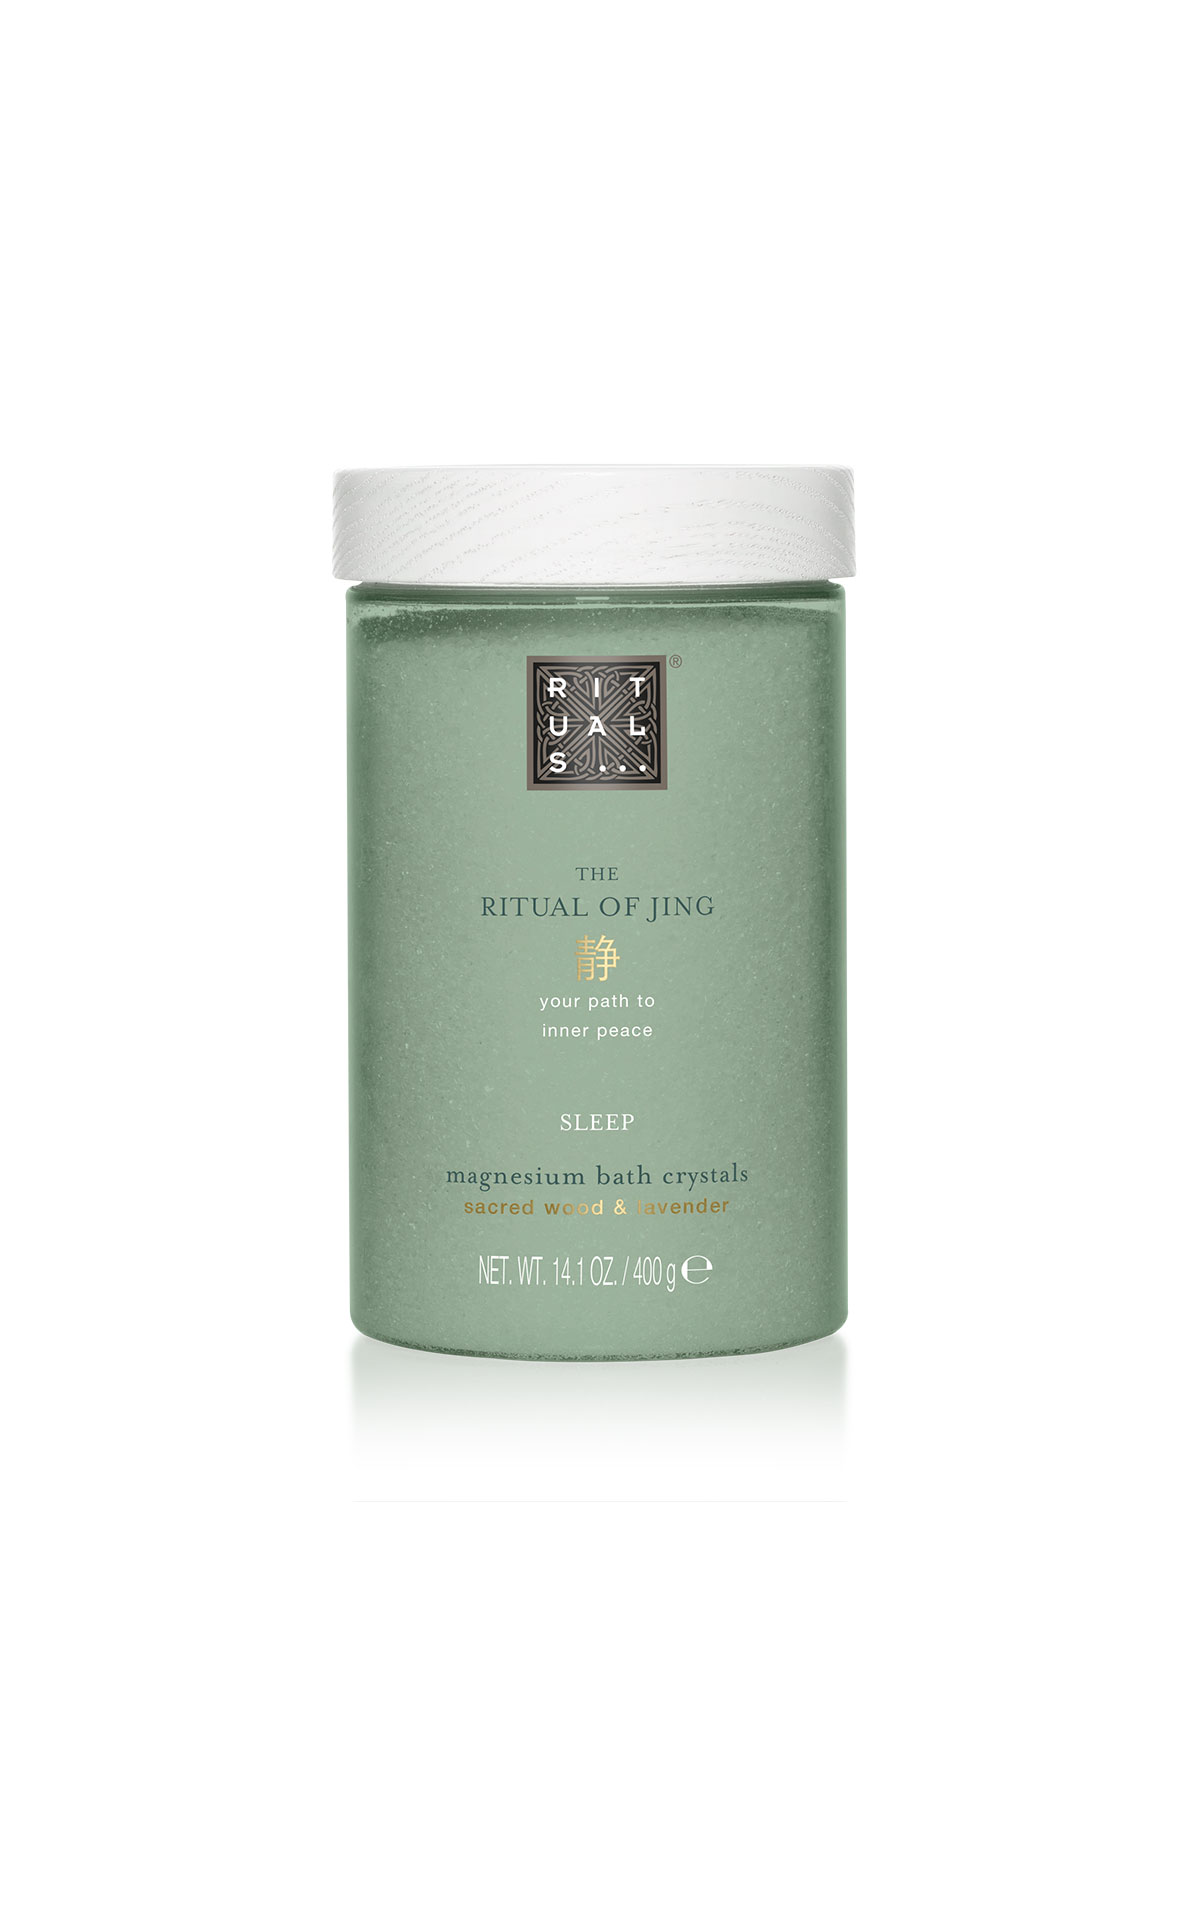 Rituals The ritual of jing magnesium bath crystals from Bicester Village